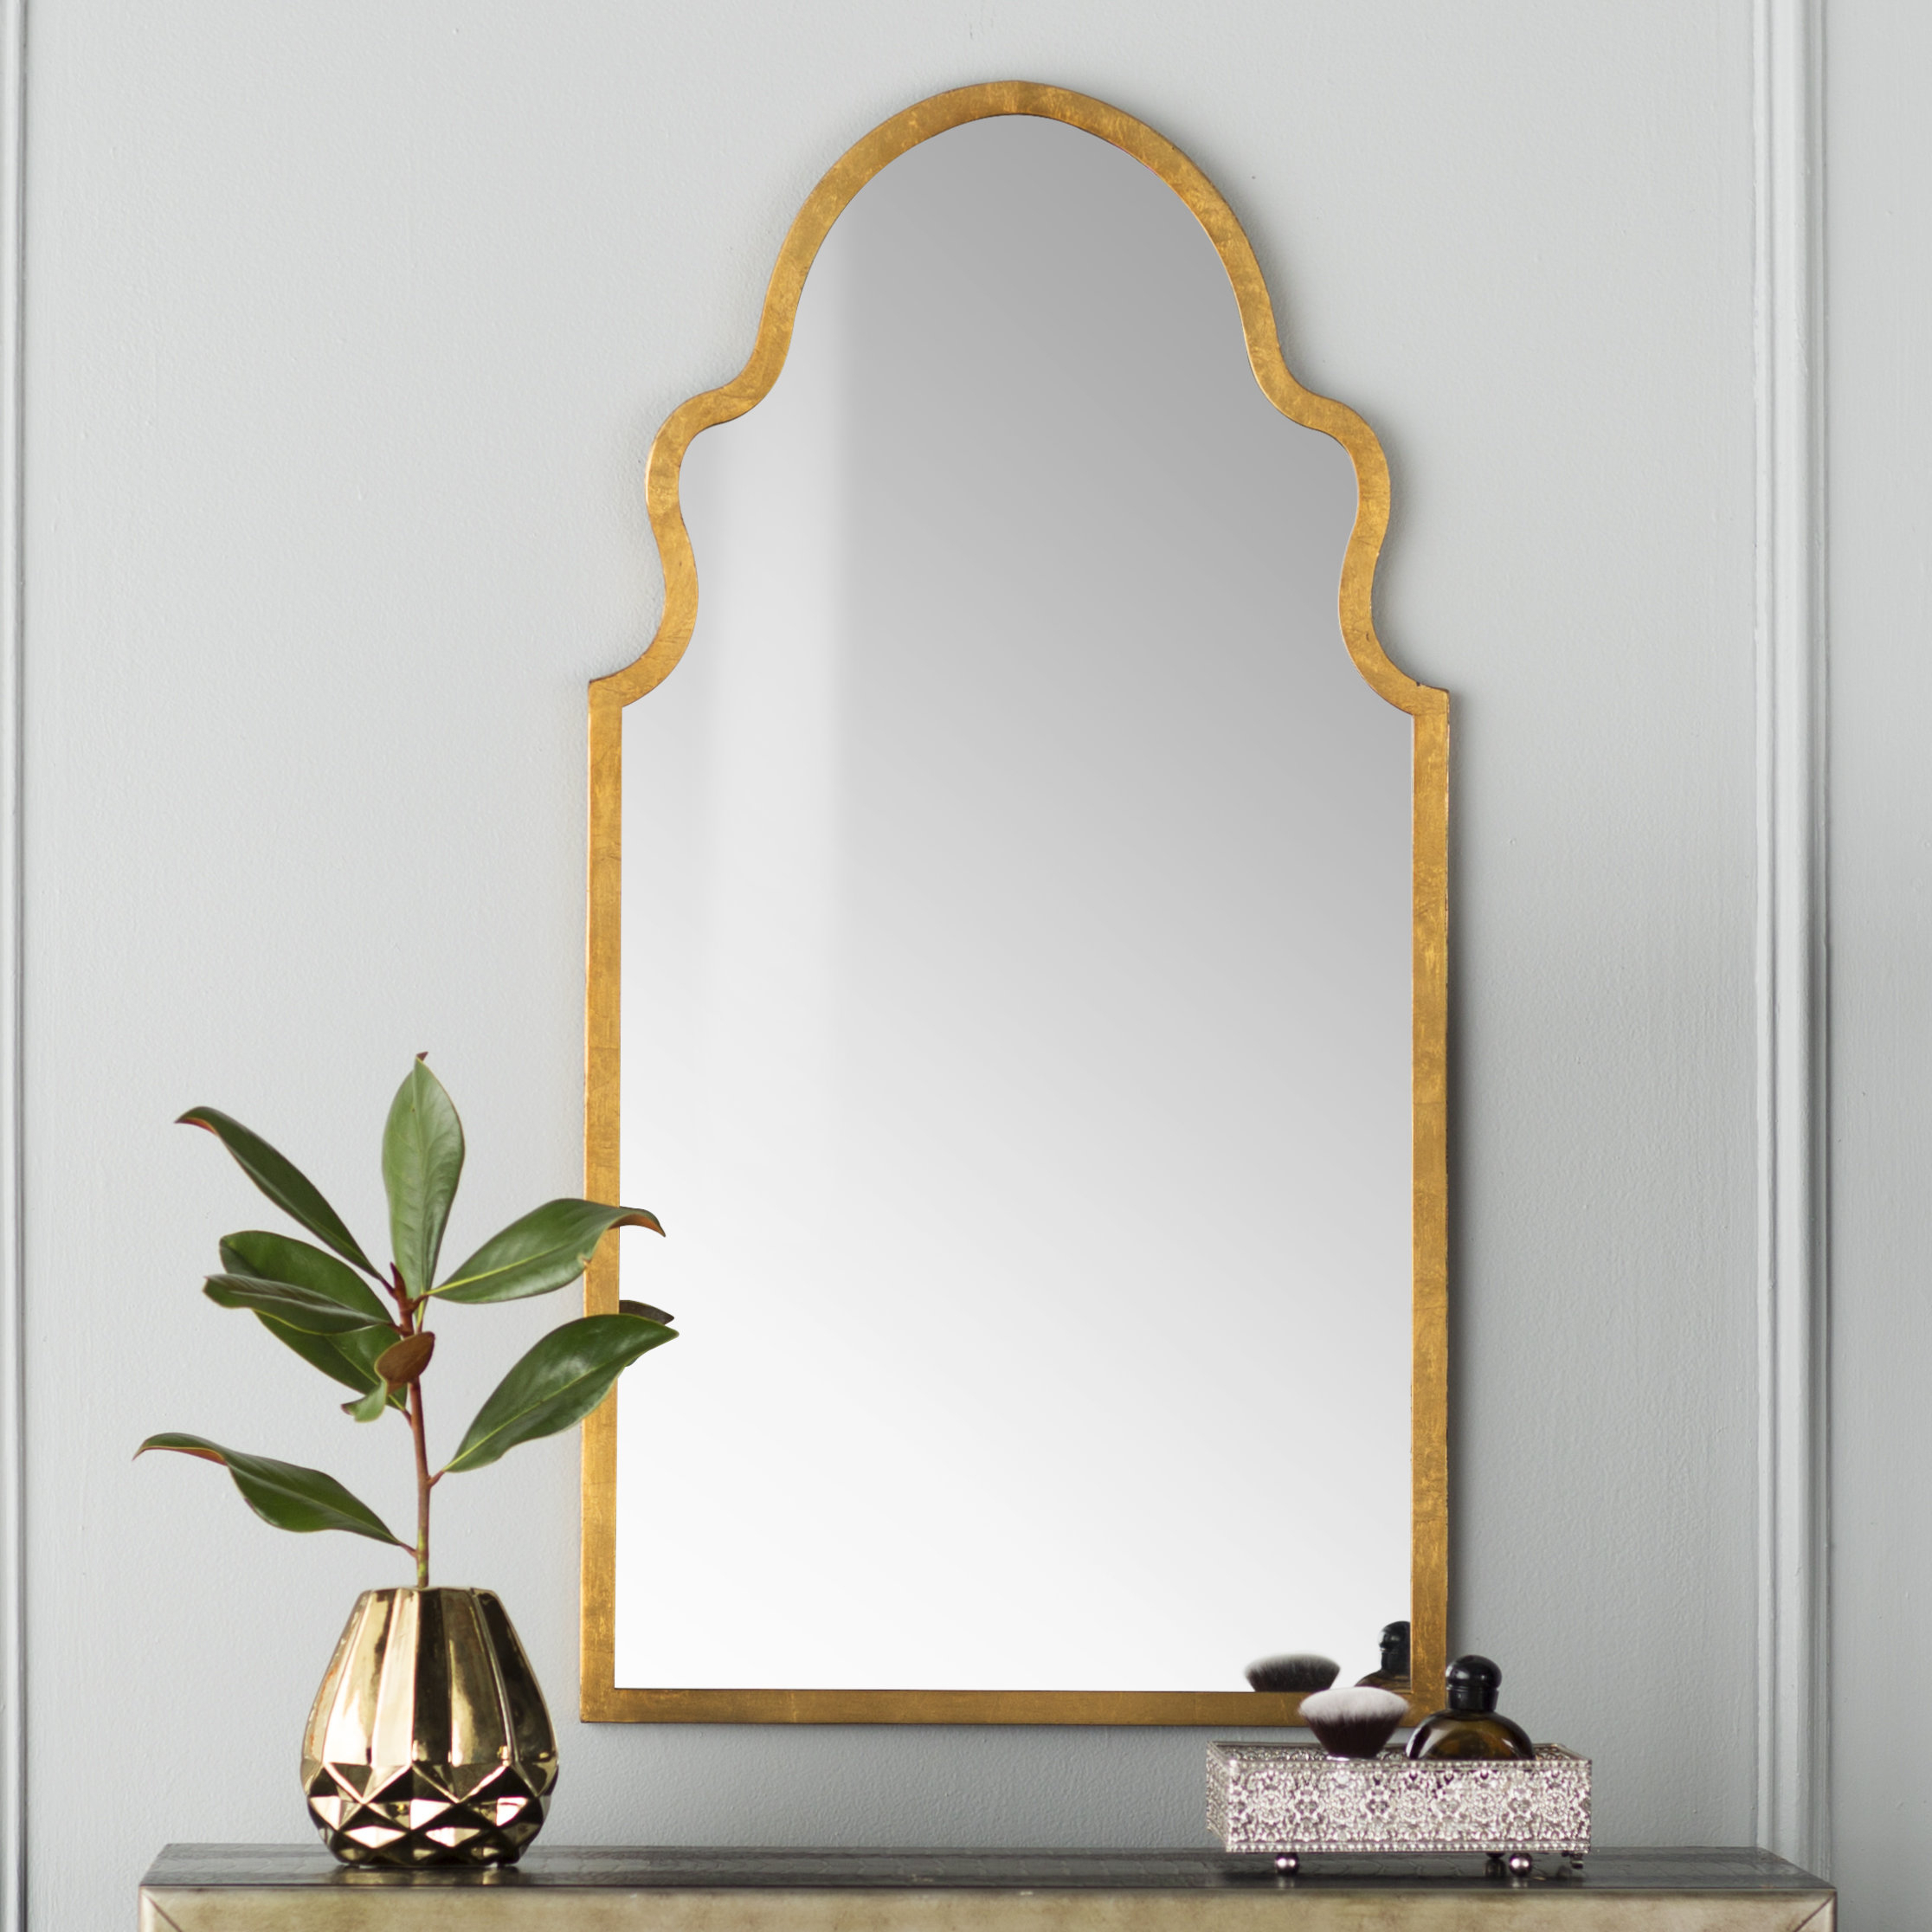 Modern Arch / Crowned Top Wall Mirrors | Allmodern Throughout Ekaterina Arch/crowned Top Wall Mirrors (Image 18 of 20)